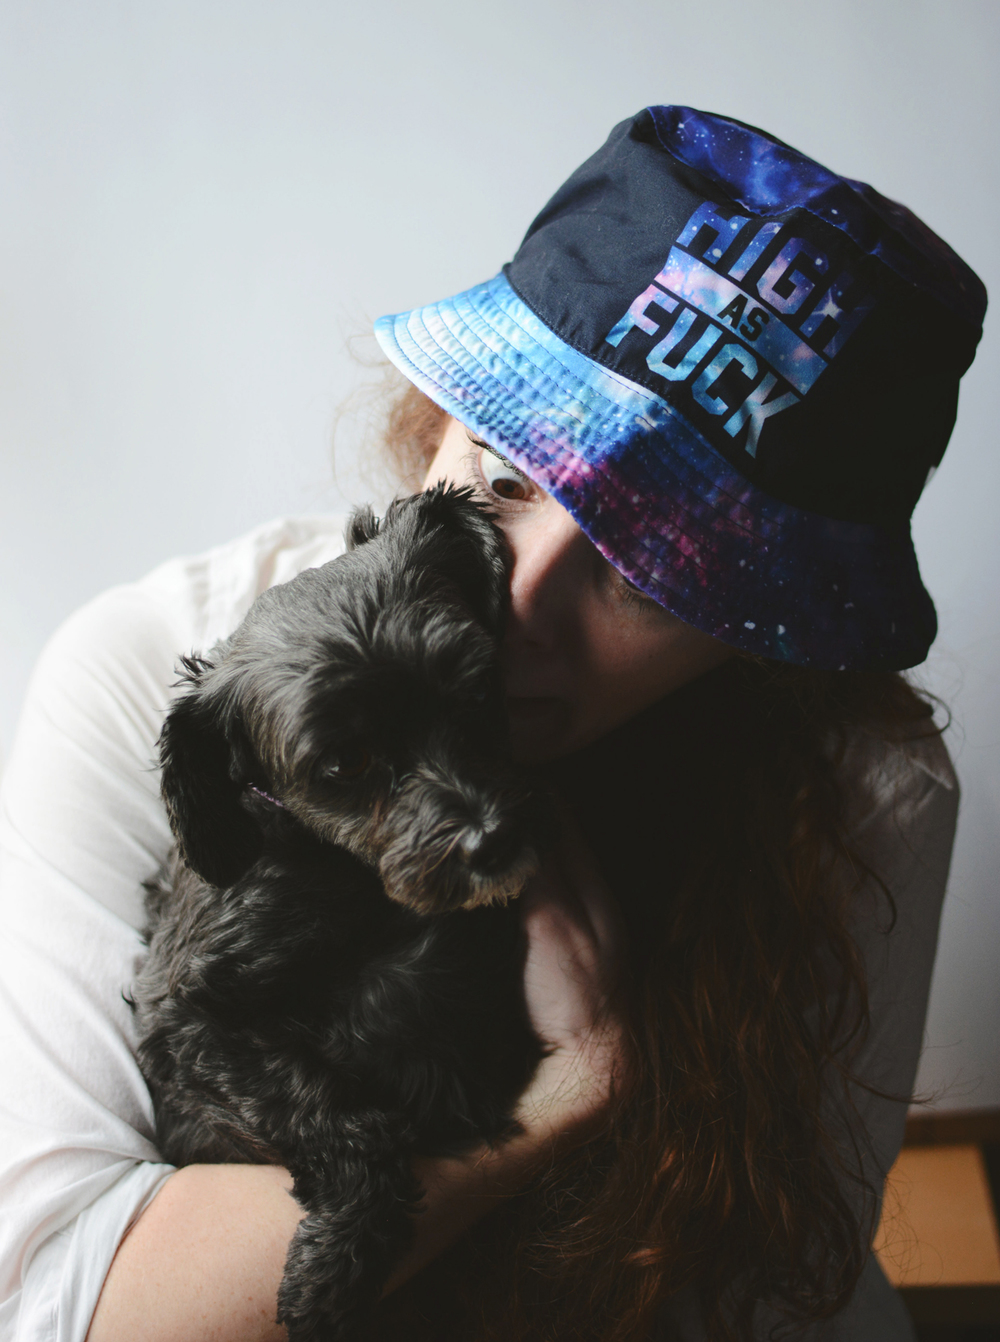 Oh and I took a few photos in the hat too...couldn't resist pulling my yorkipoo, Gracie, into the photo with me! I was excited; she wasn't so sure.